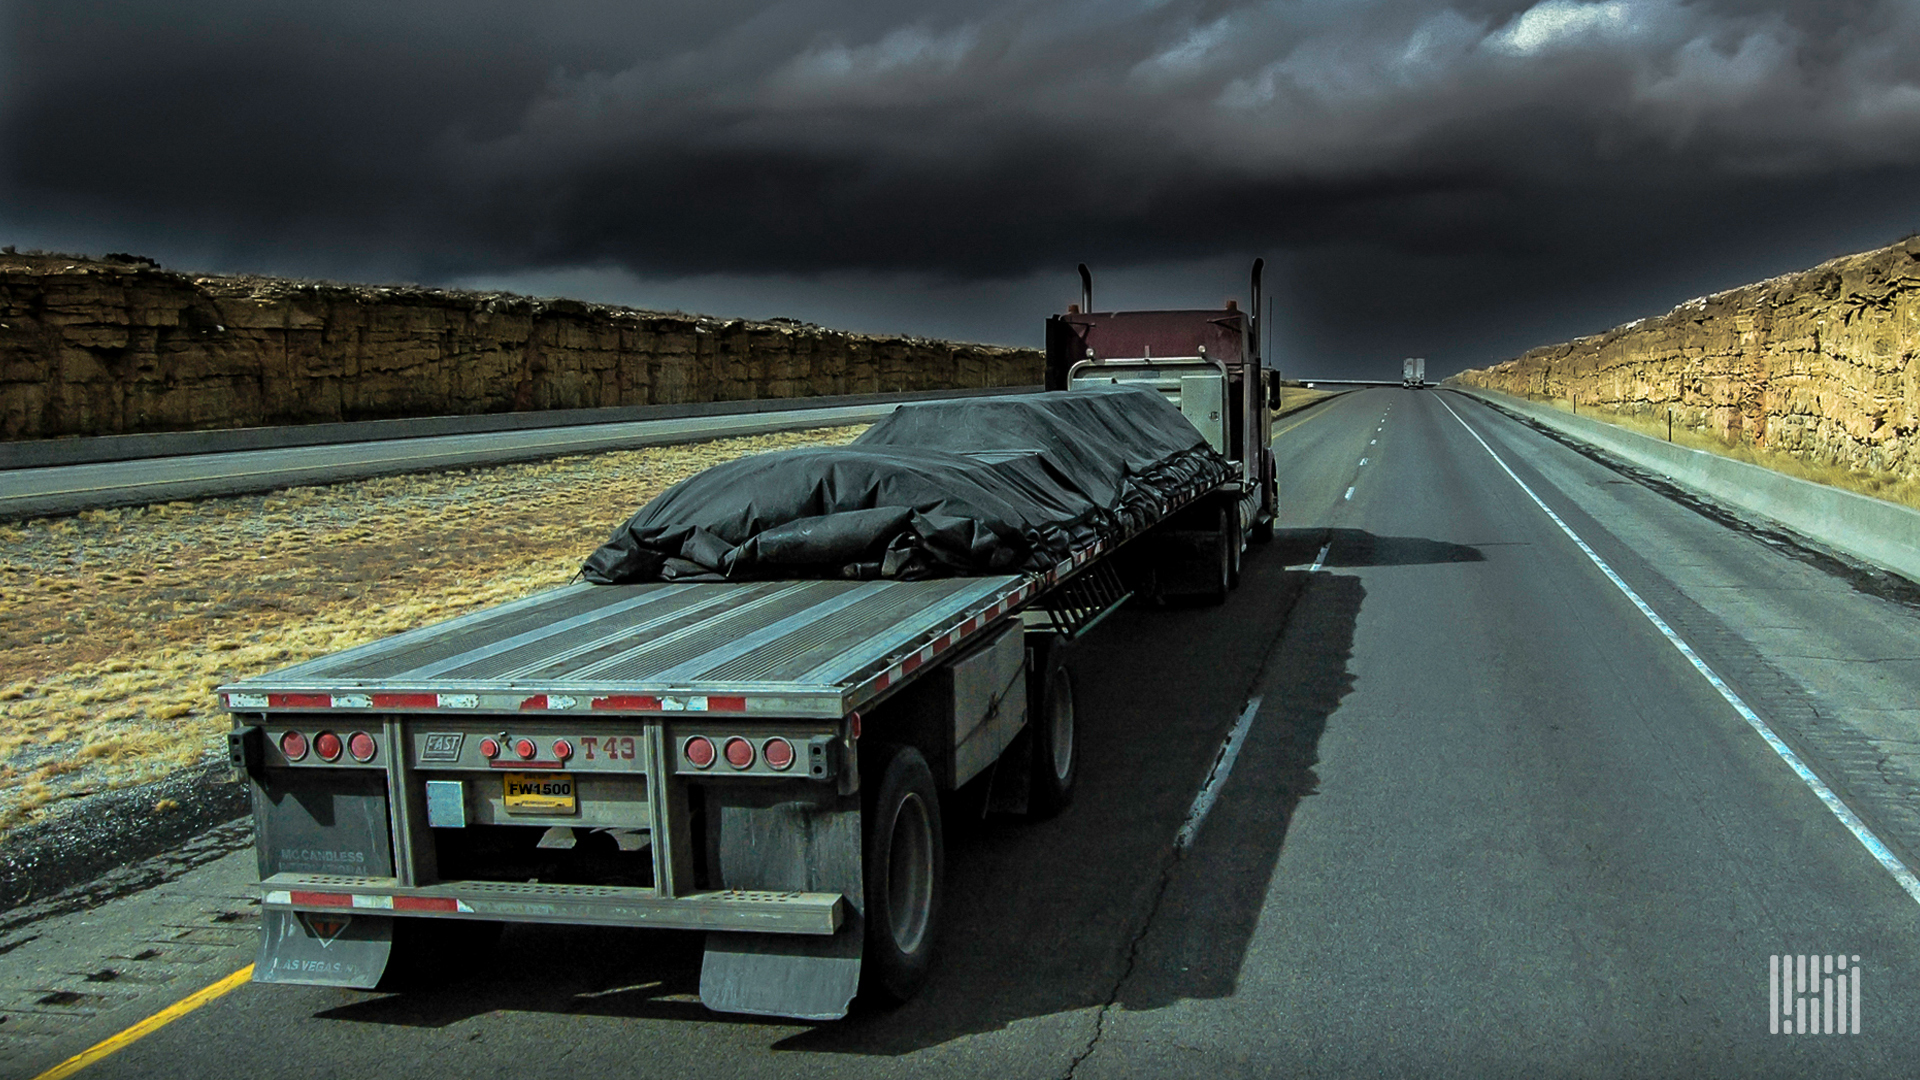 Flatbed tractor-trailer heading down highway with dark thunderstorm cloud across the sky.